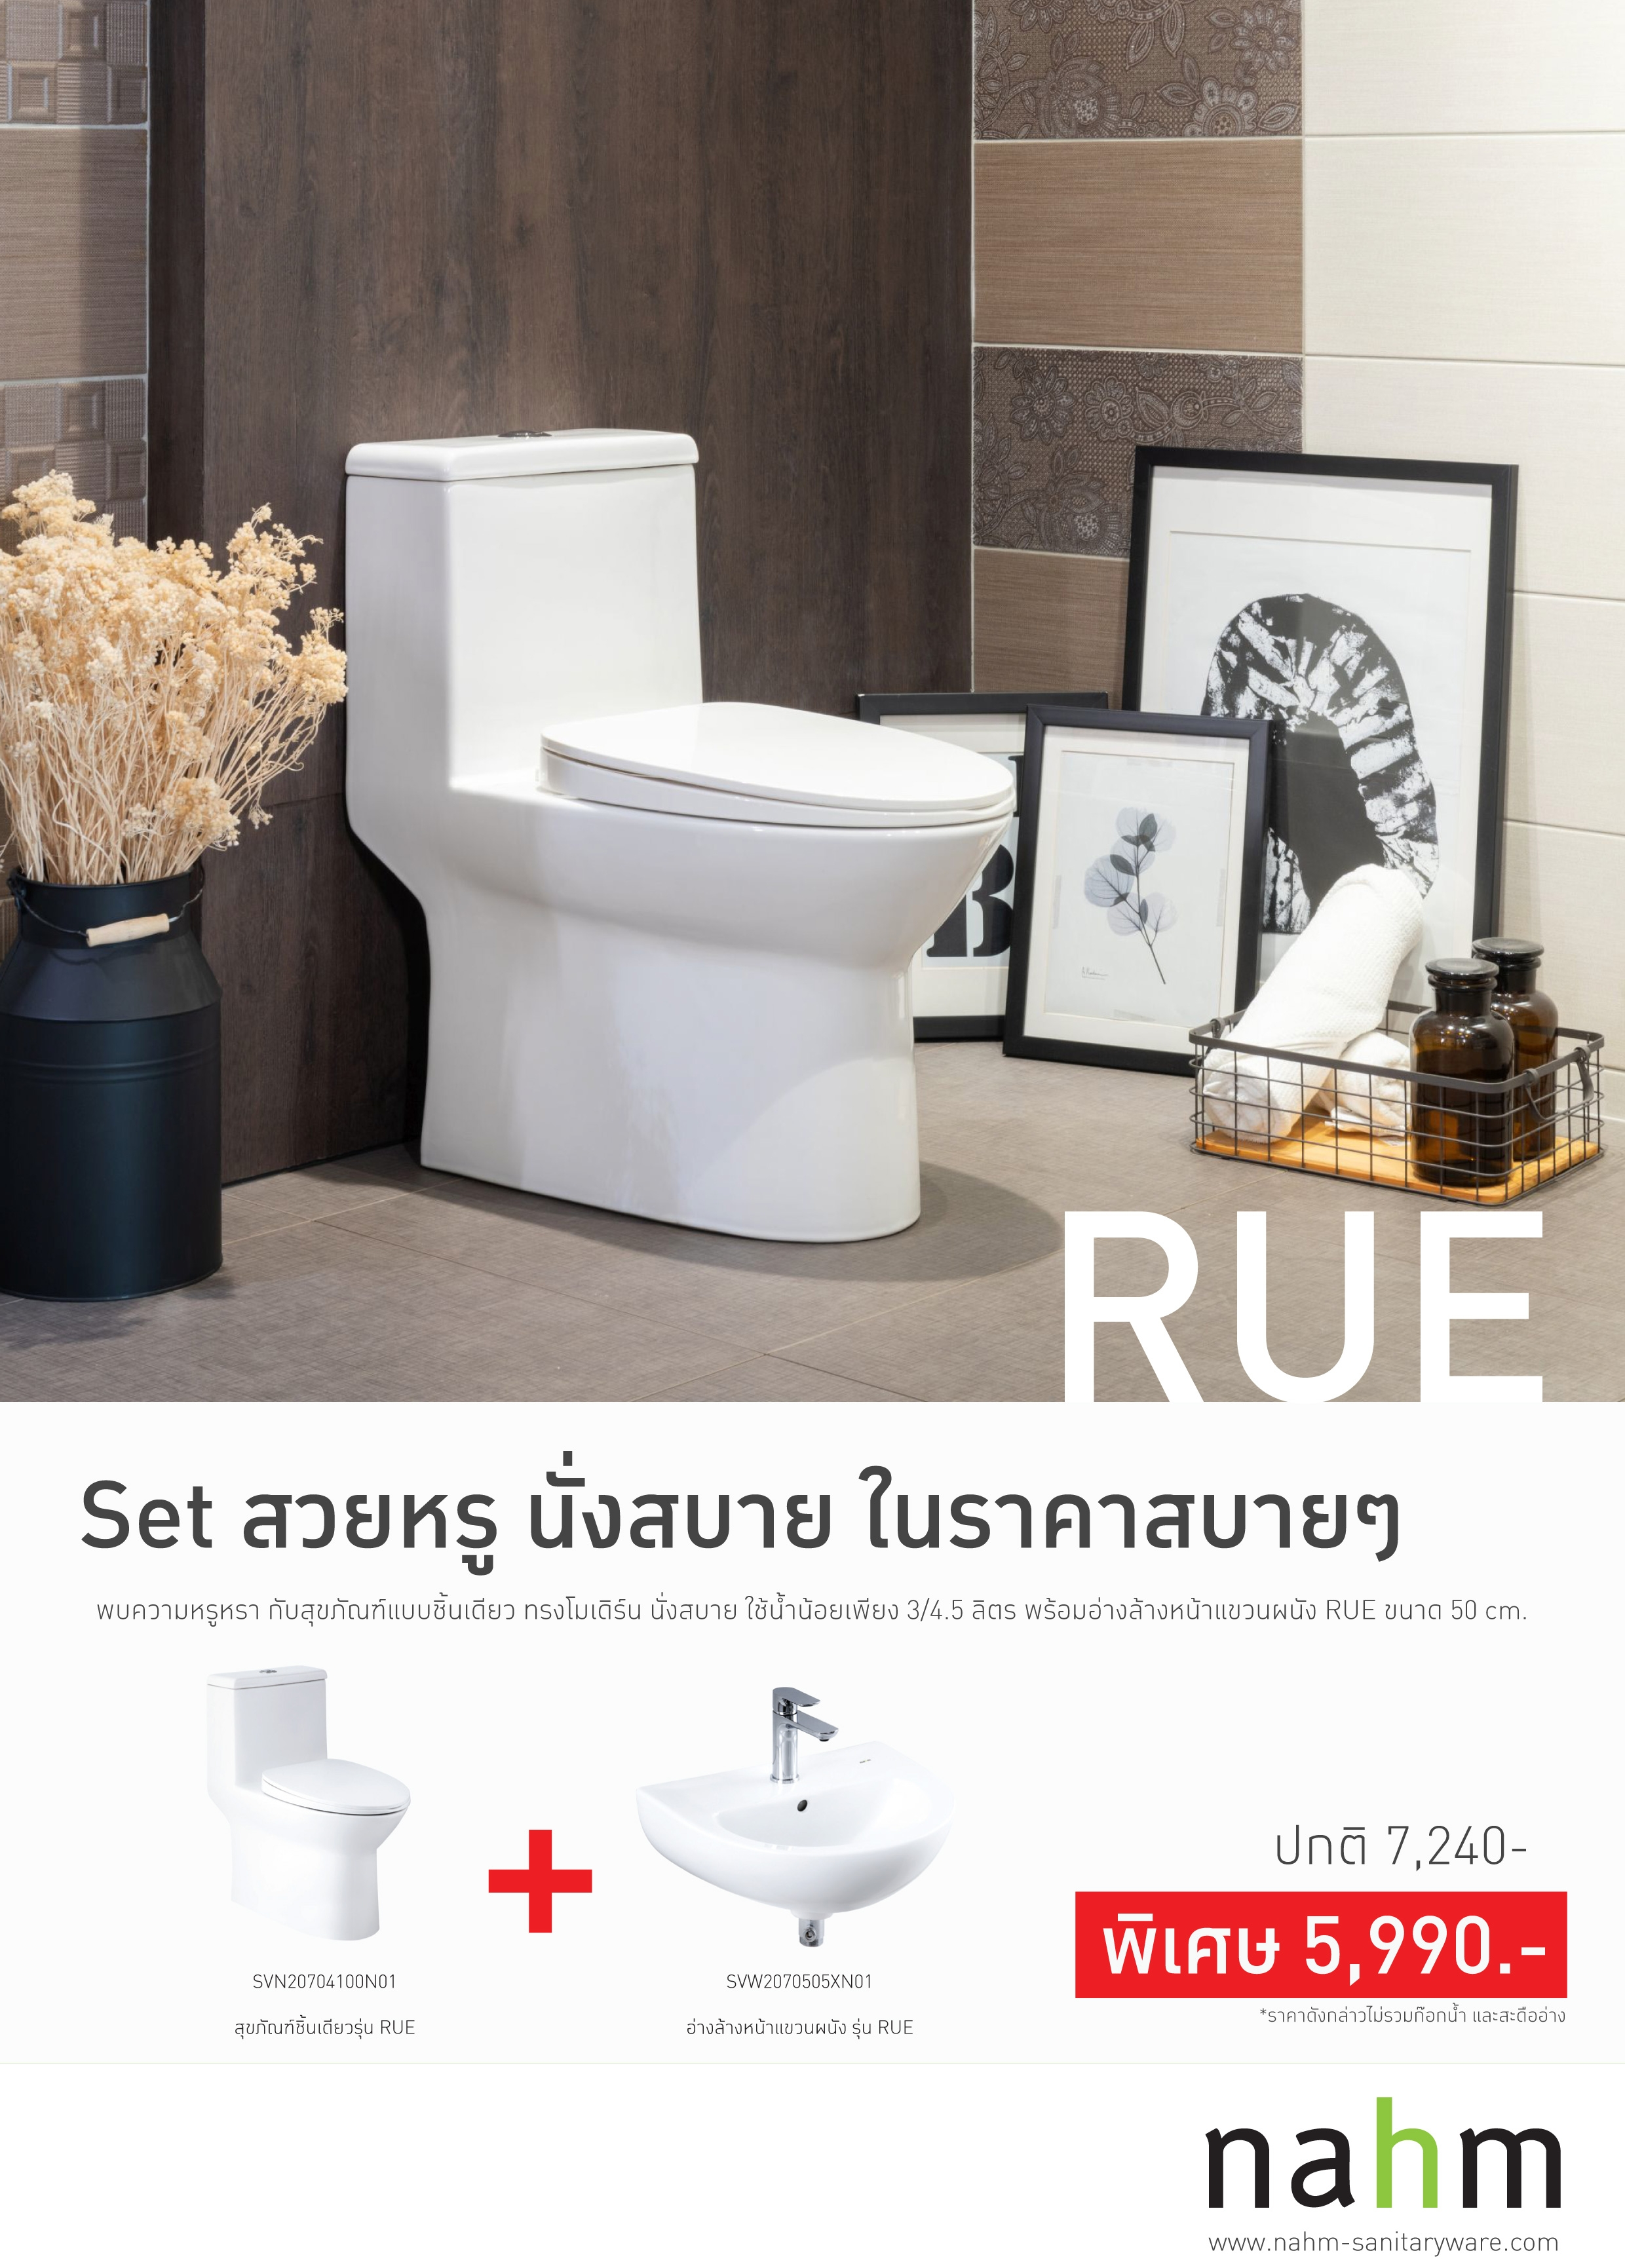 NAHM RUE SET Promotion